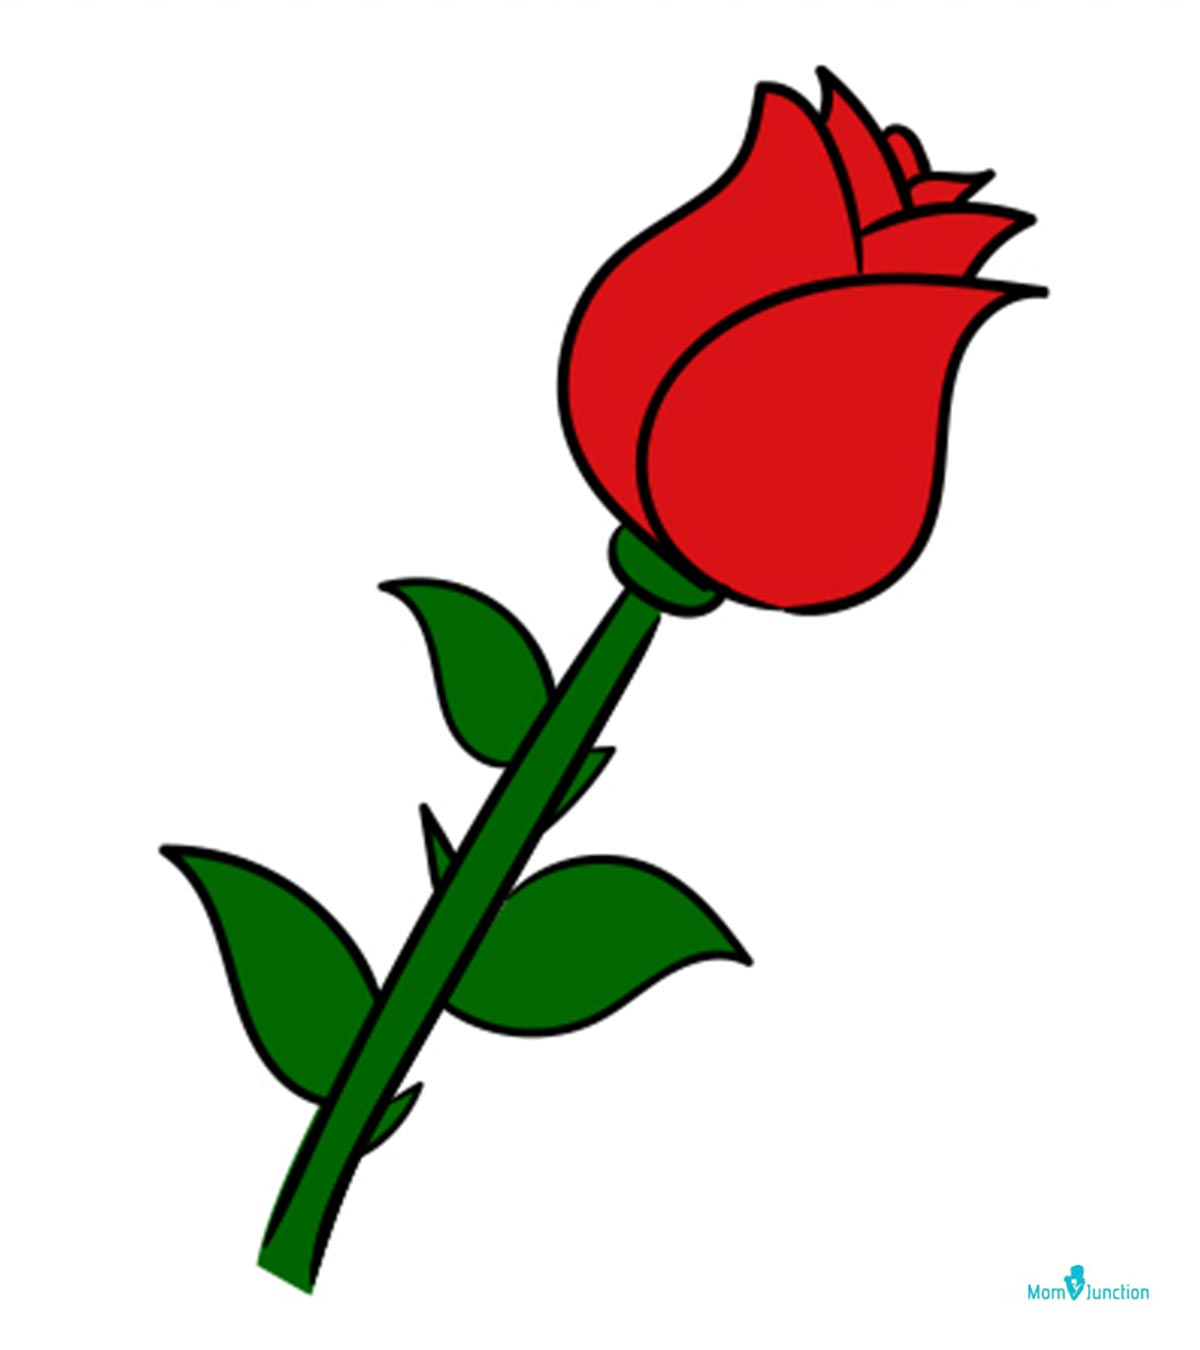 How To Draw A Rose Easy Step By Step Guide